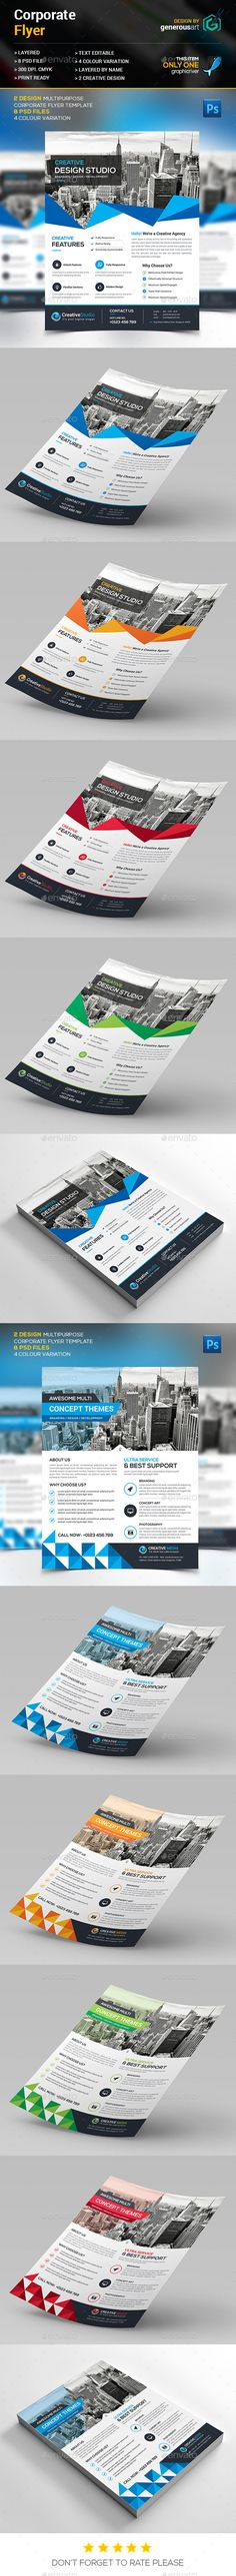 Corporate Flyer Template PSD #design Download: http://graphicriver.net/item/corporate-flyer/13335526?ref=ksioks